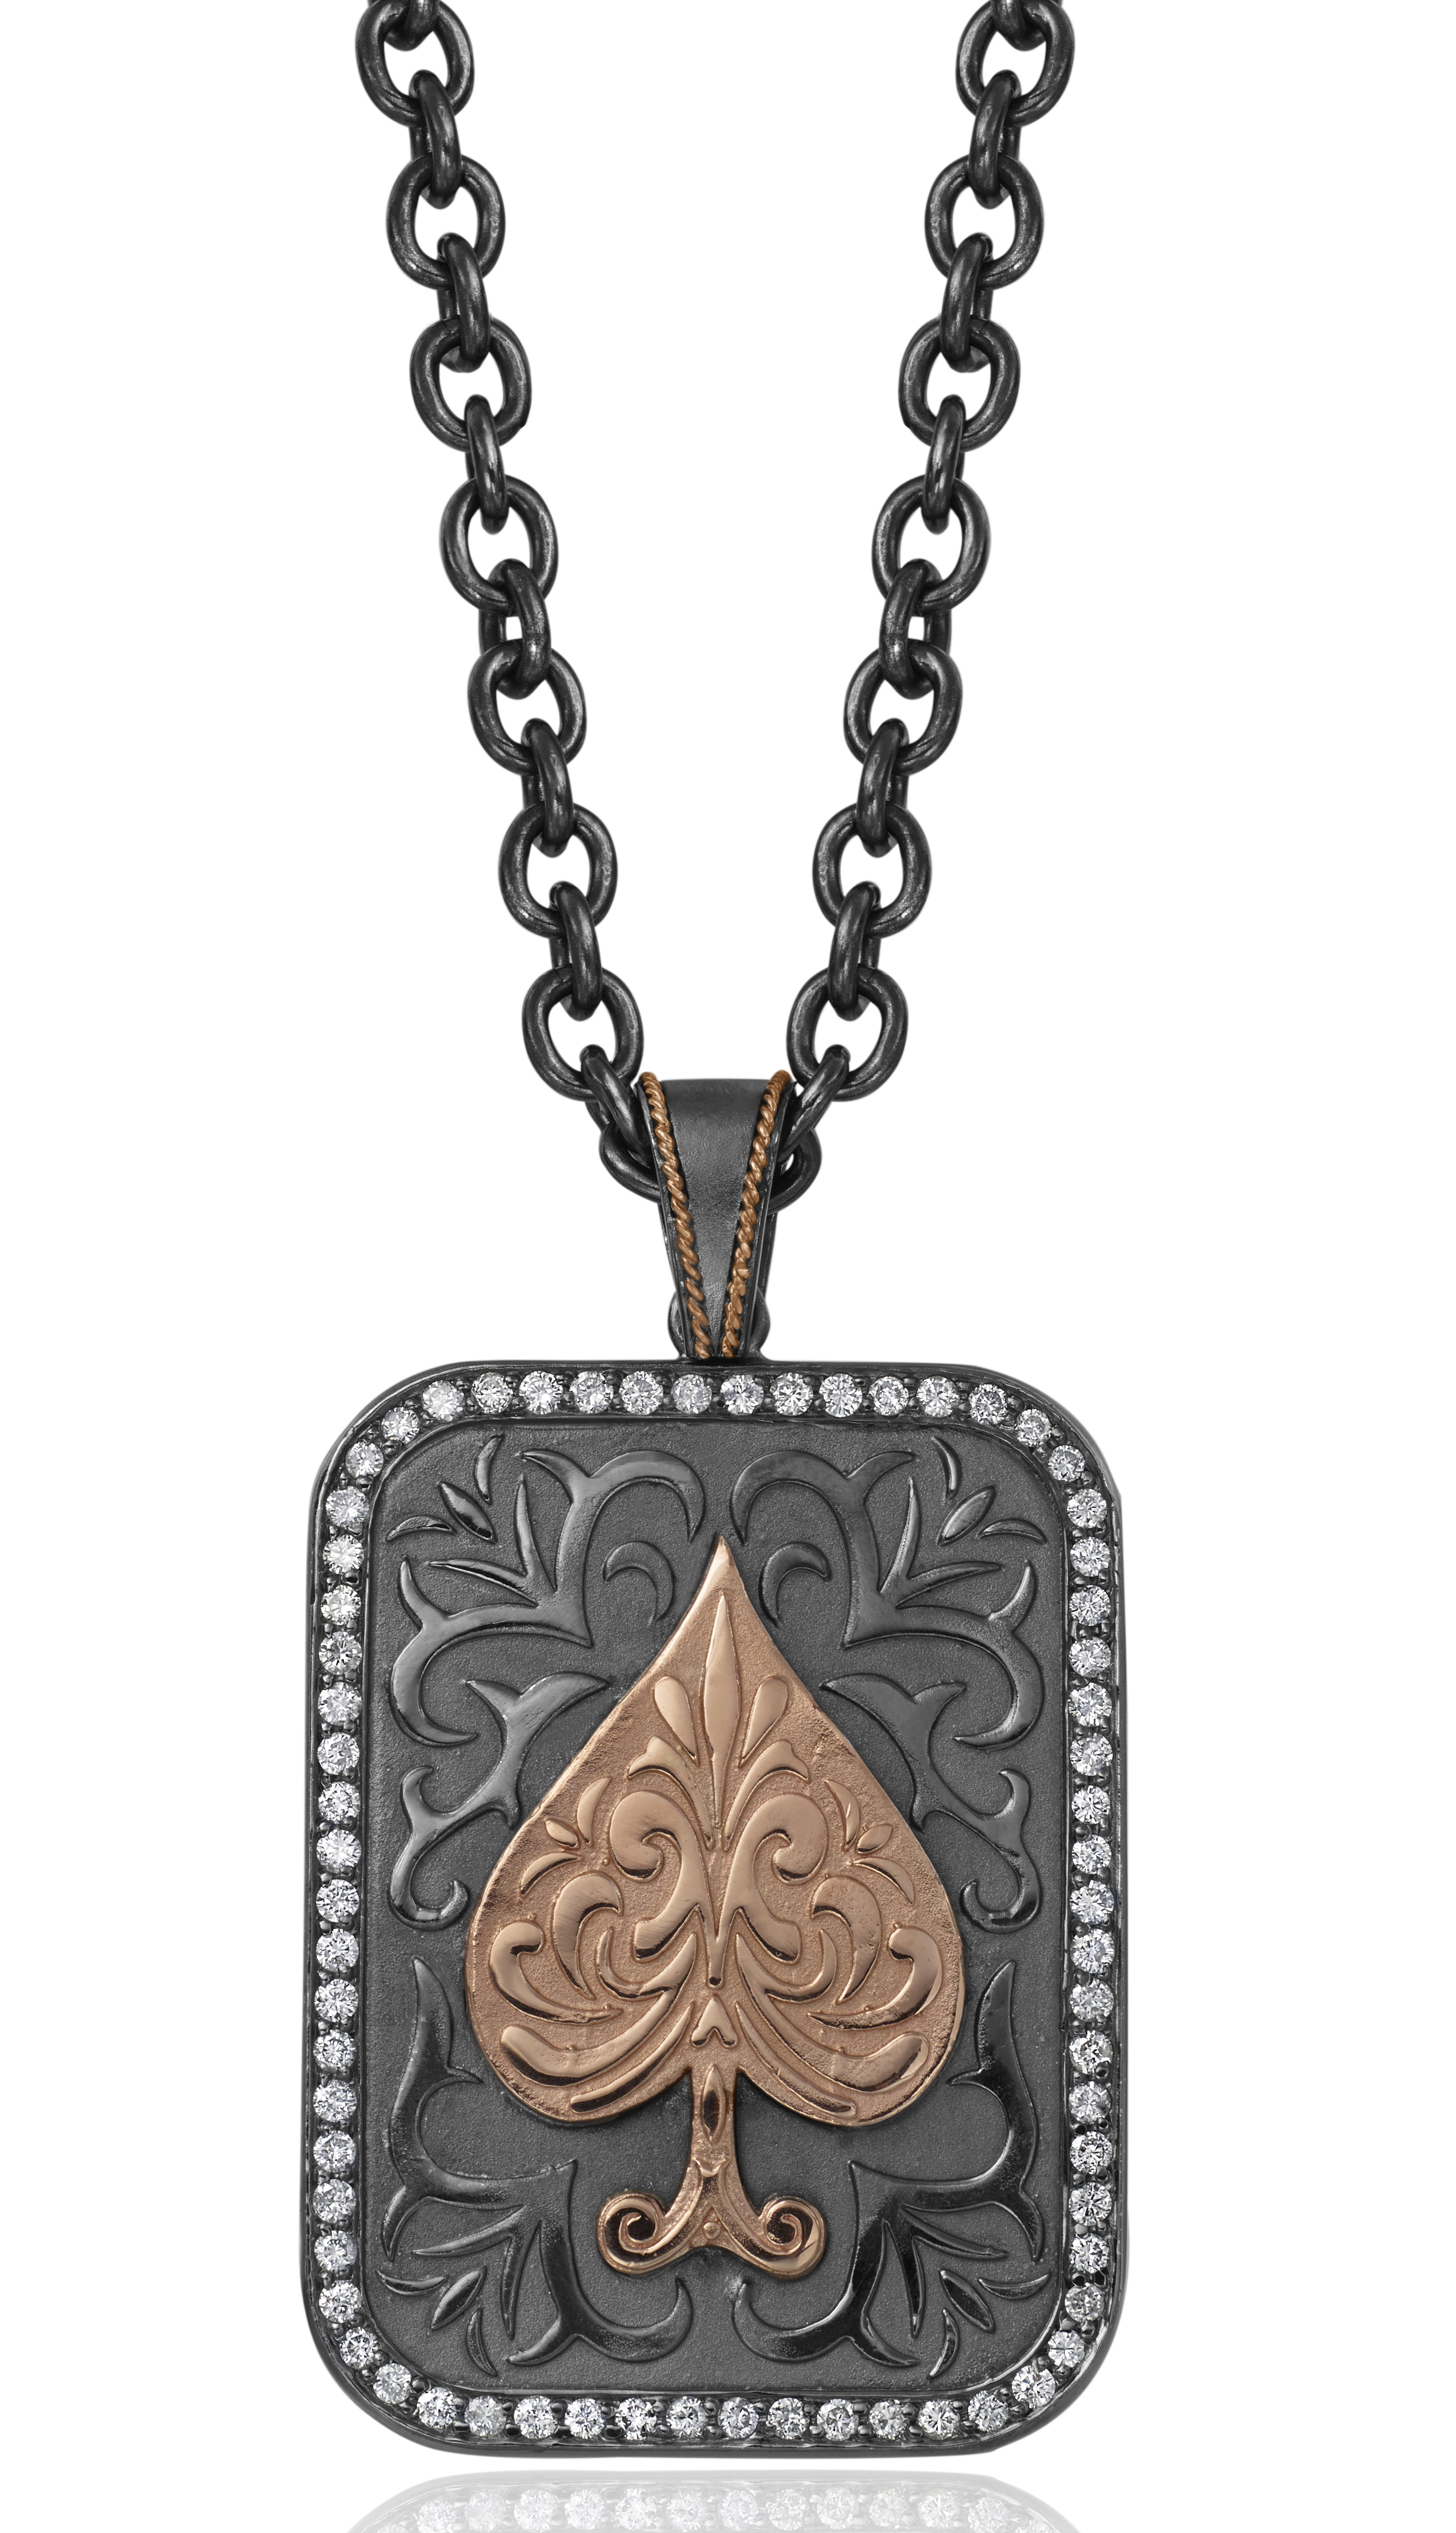 Daniel Bass Ace of Spades dog tag | JCK On Your Market